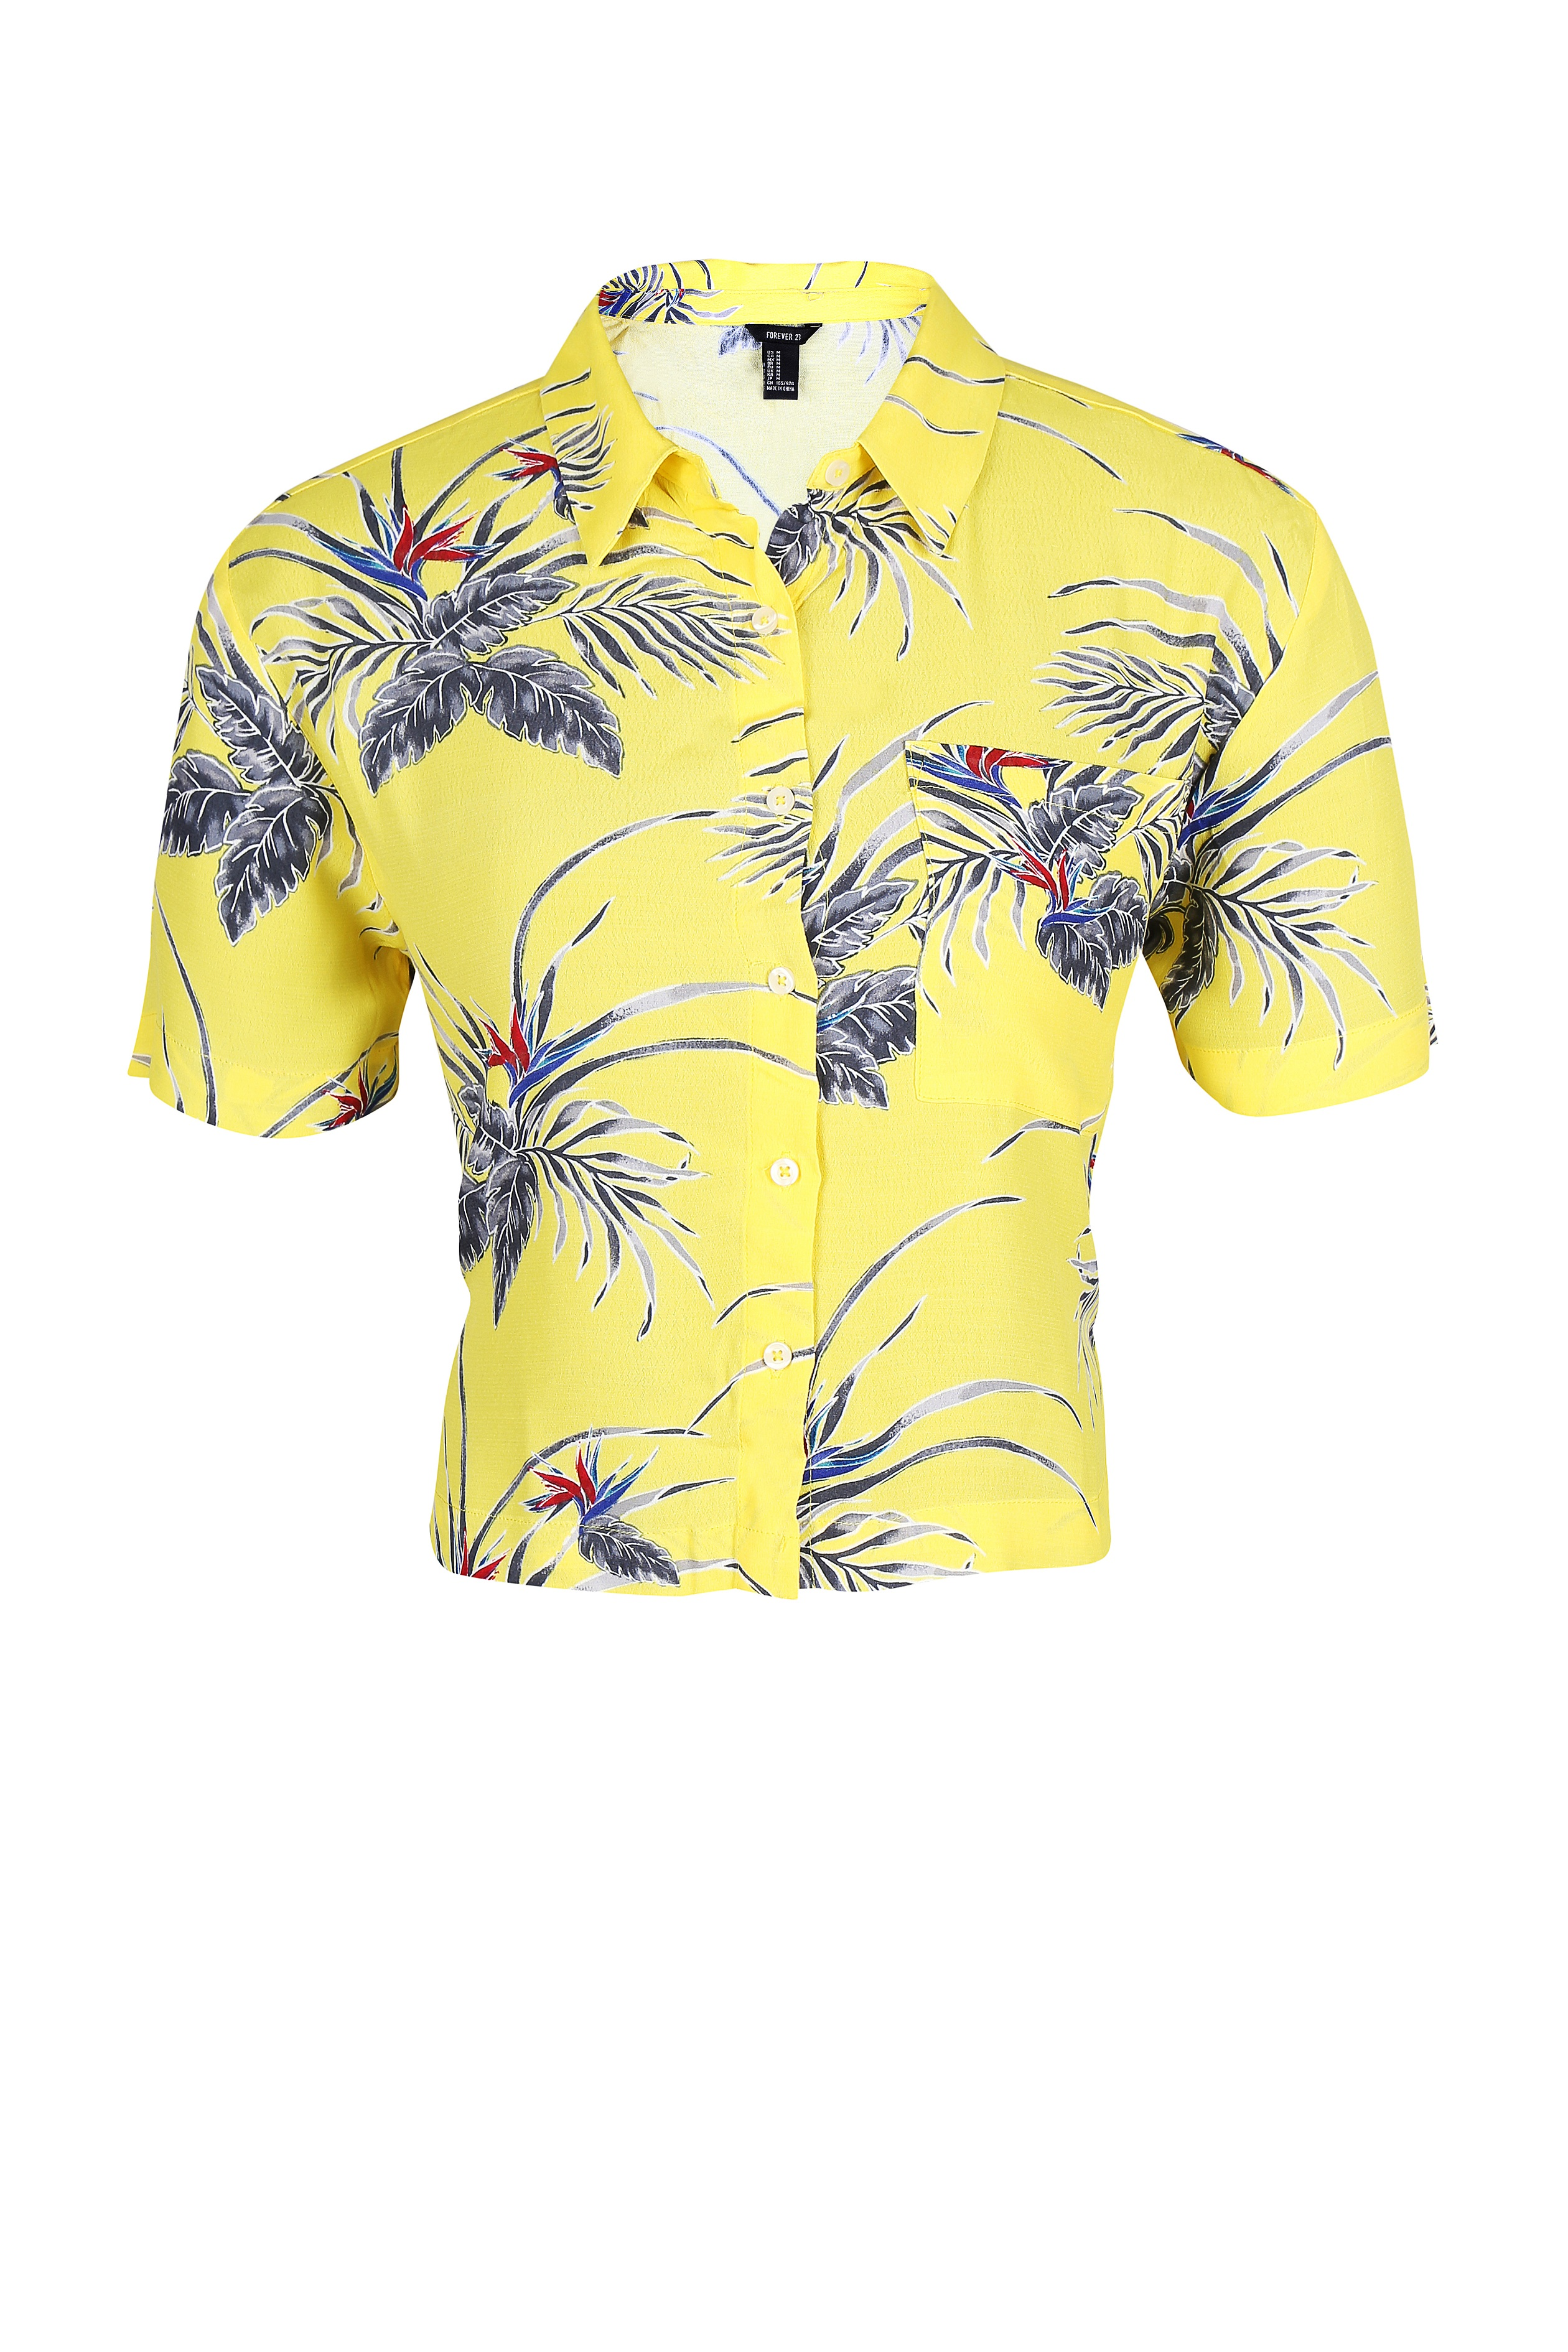 Yellow leaf print shirt-top for women - Rs. 1299